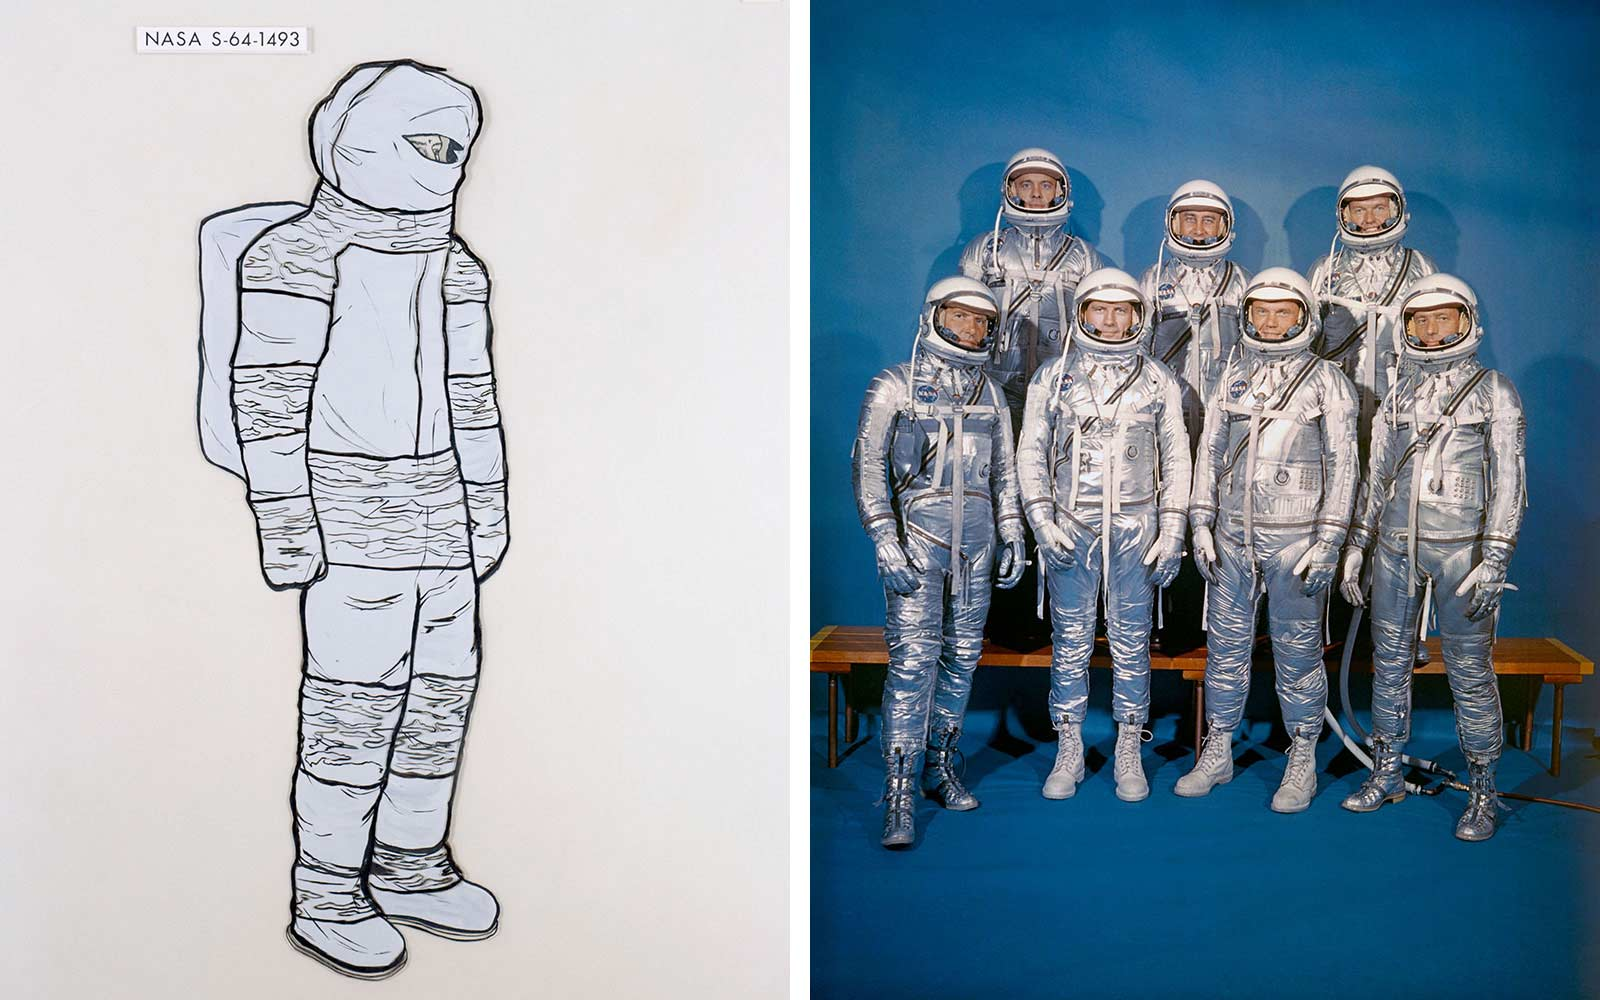 New Boeing NASA spacesuit revealed